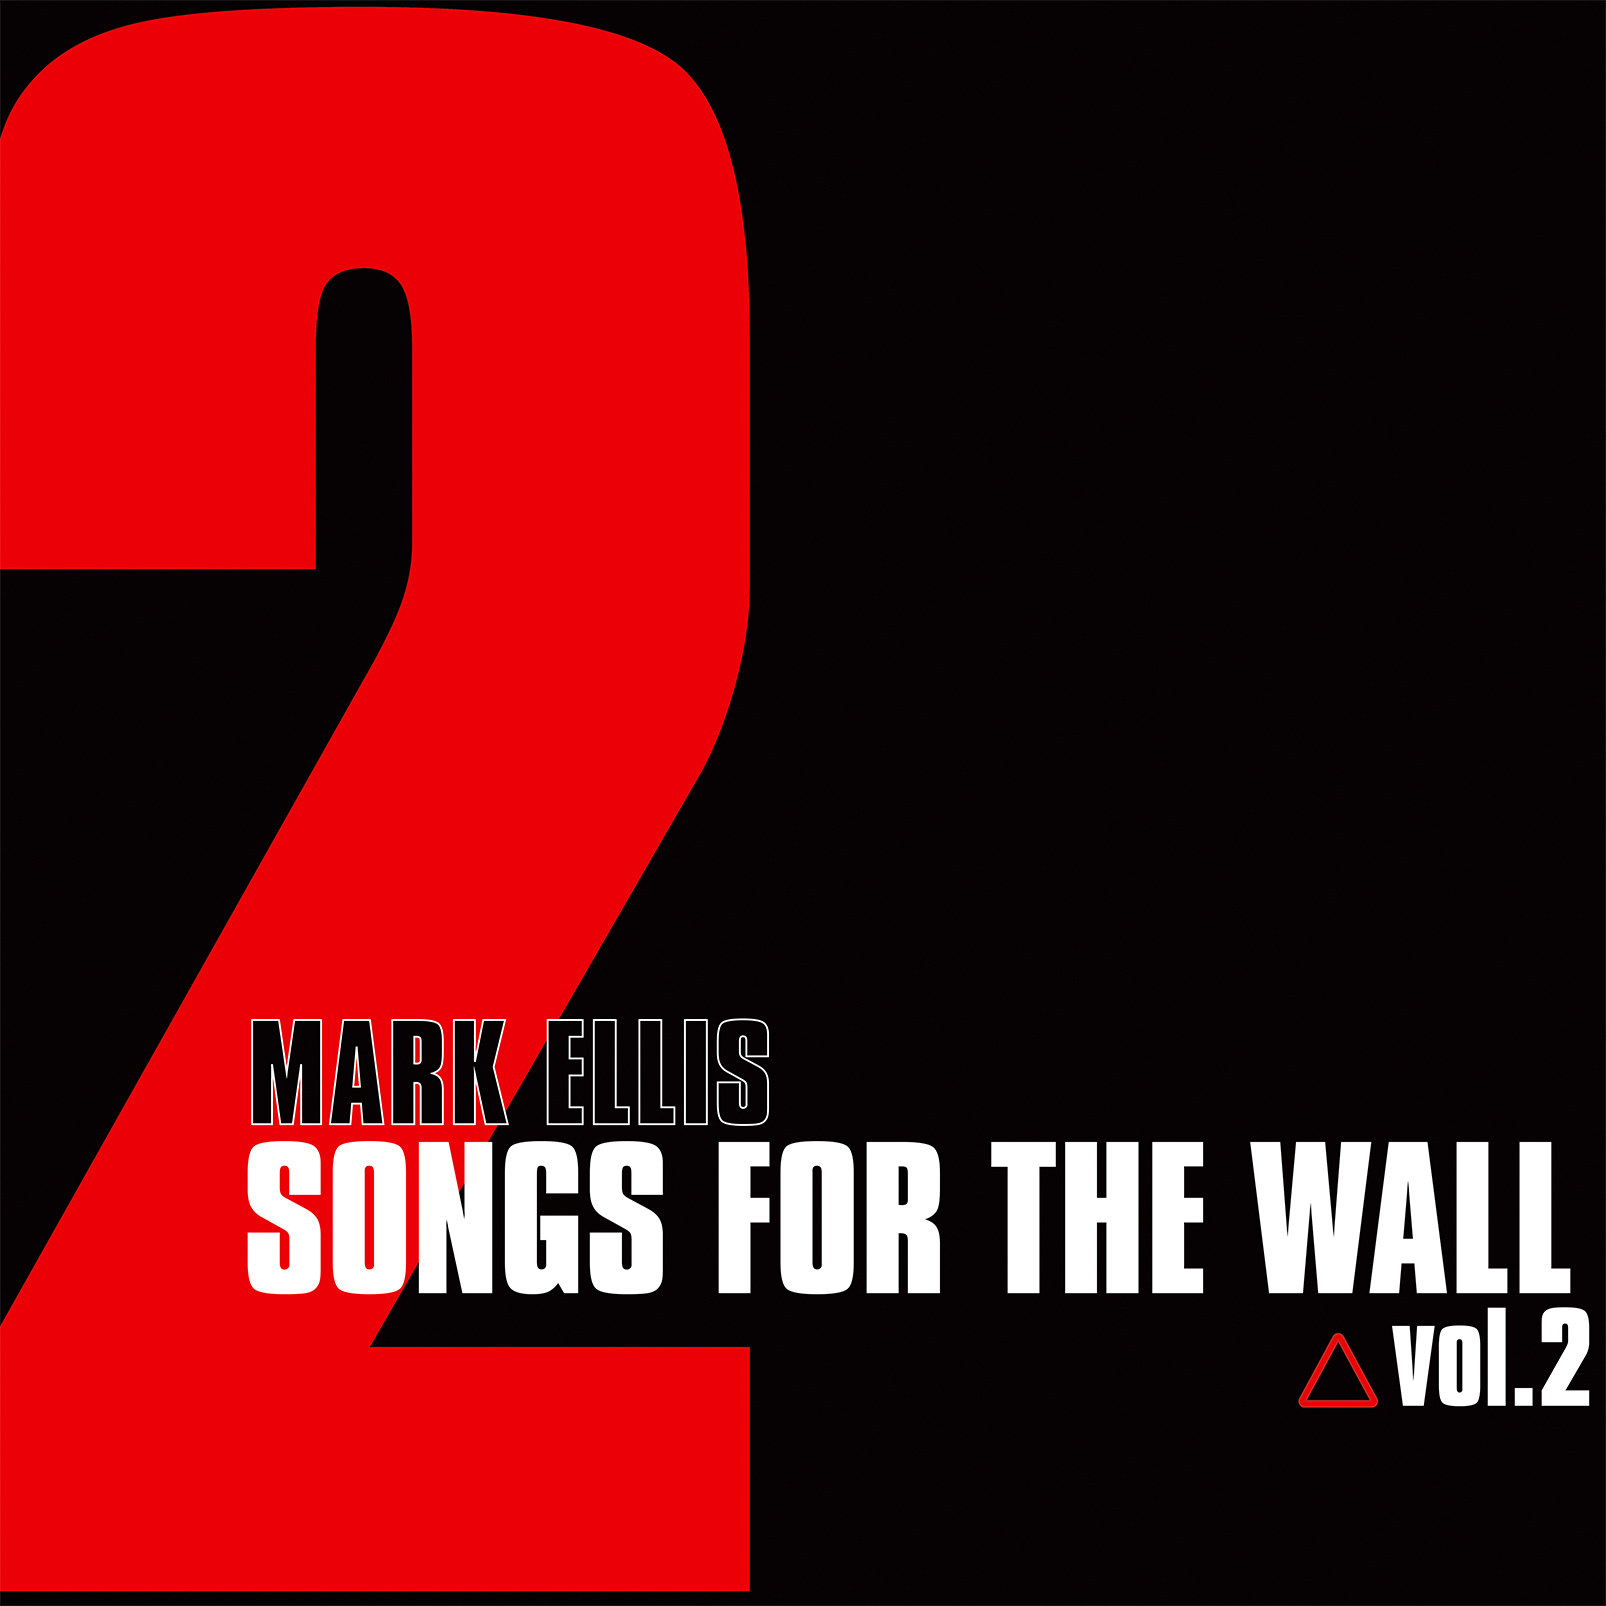 Songs For The Wall Vol.2